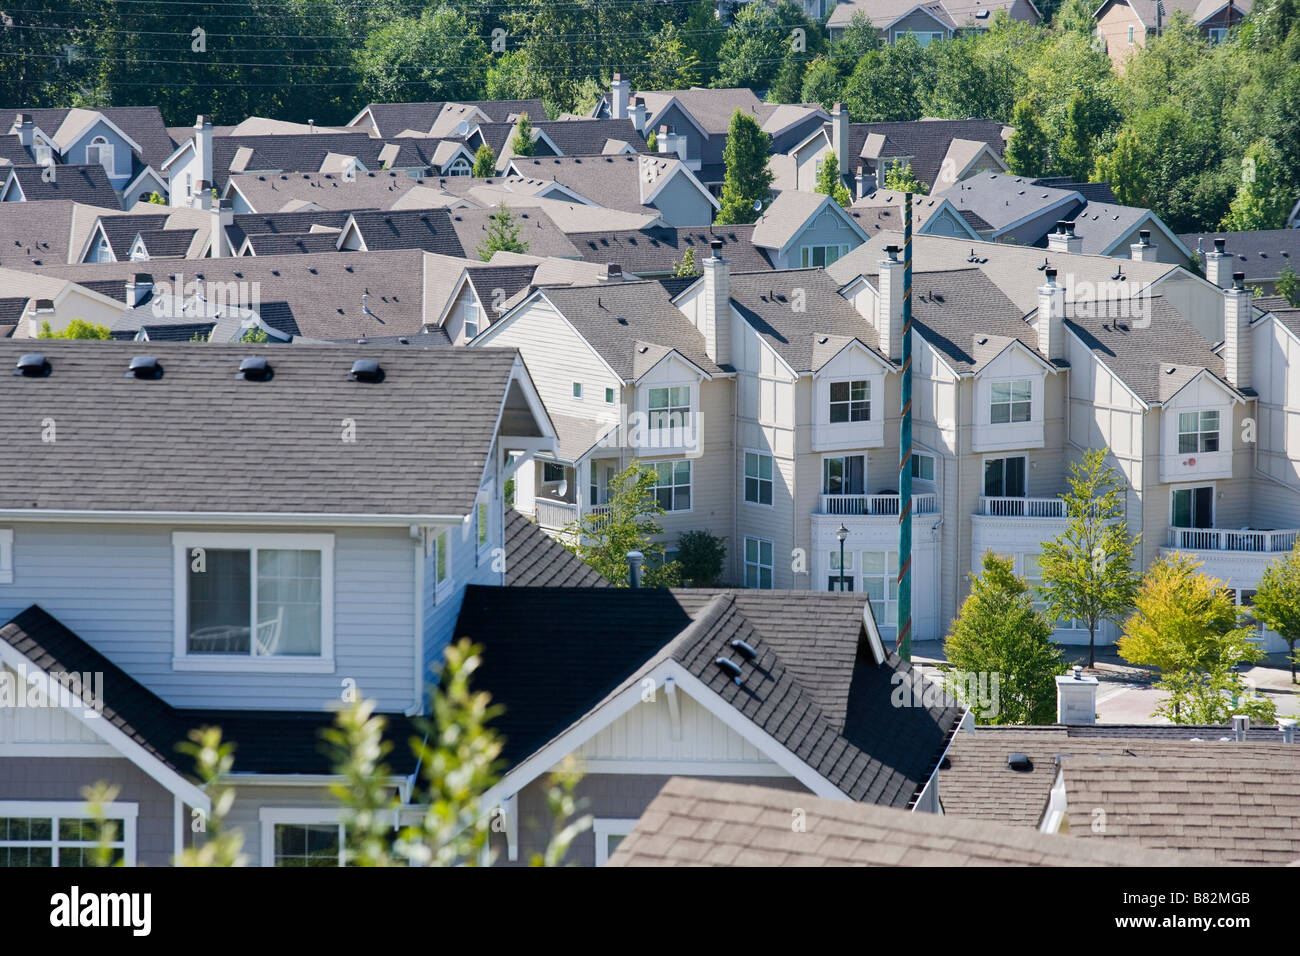 High angle view of a housing development in Issaquah WA United States - Stock Image